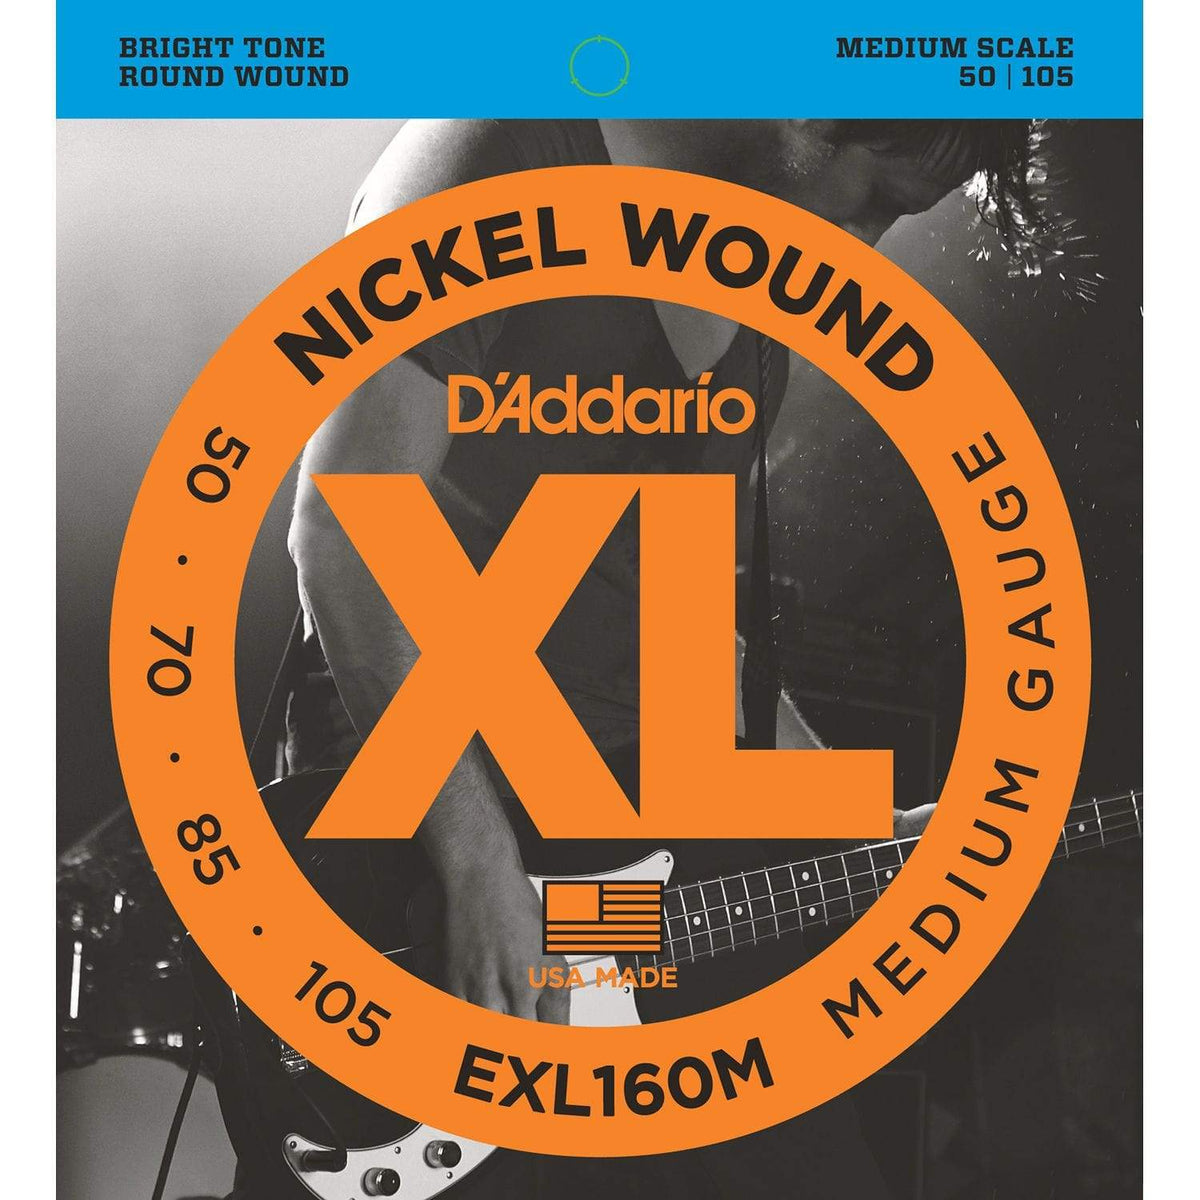 D'Addario Guitar String D'Addario EXL160M Nickel Wound Bass Strings